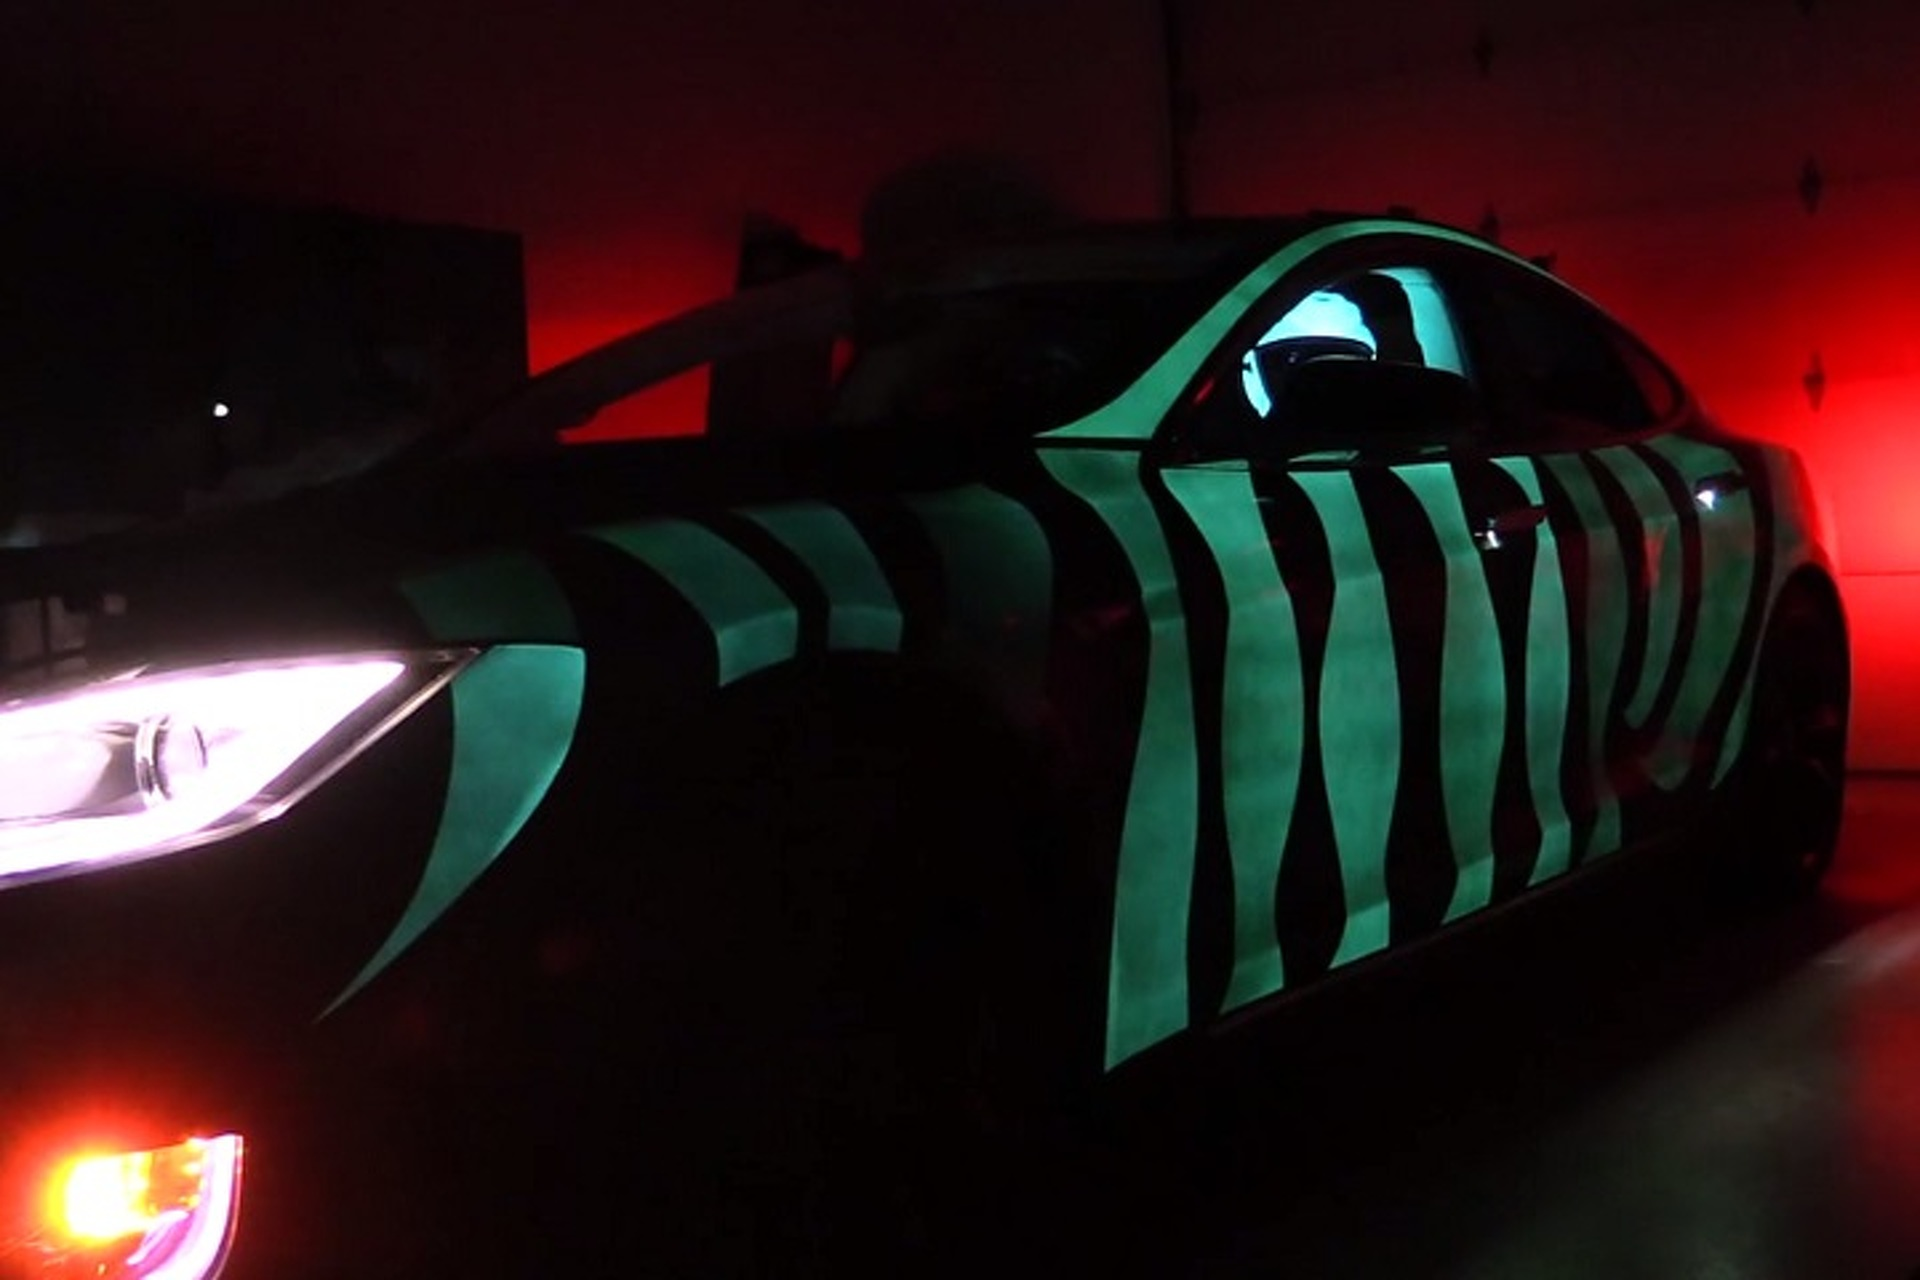 Glow In The Dark Tesla Looks Like 'Tron' Light Cycle [Video]